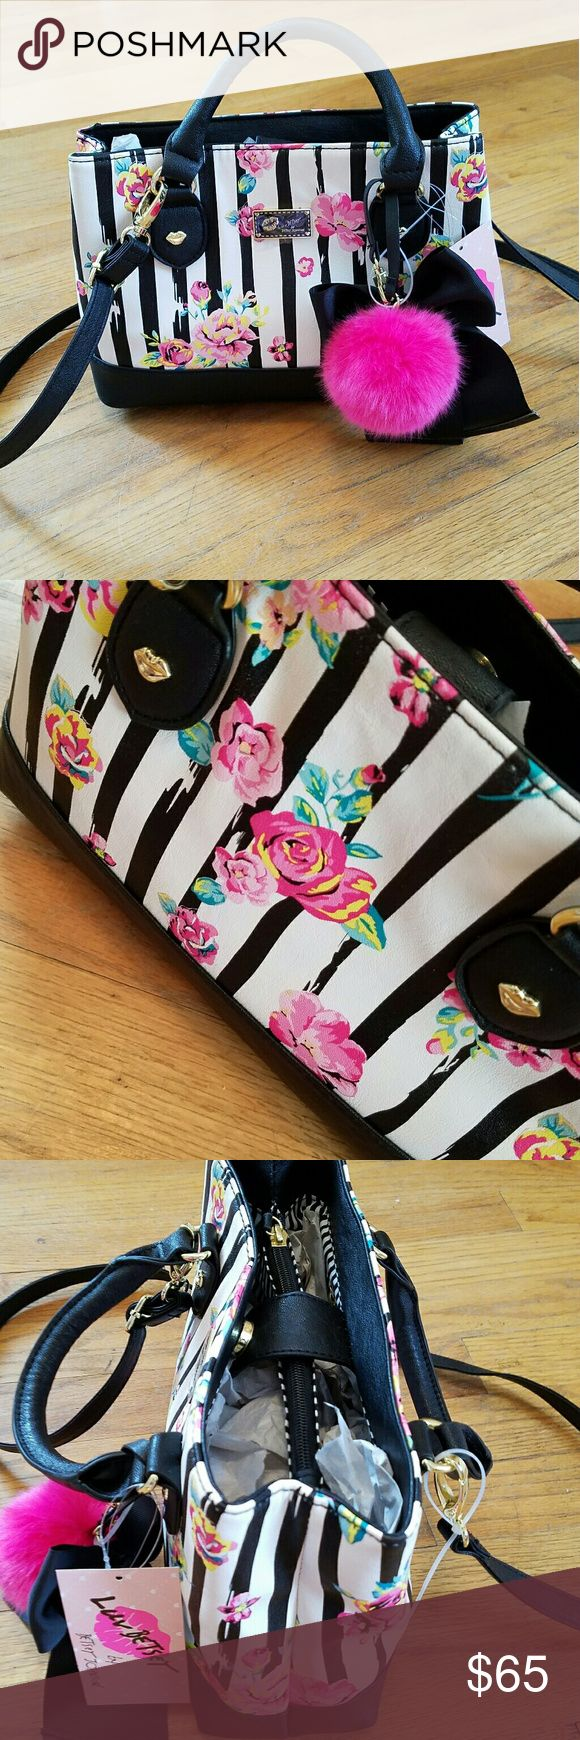 """🌹NWT-BETSEY JOHNSON FLORAL DESIGN! 🌹NWT-BETSEY JOHNSON FLORAL DESIGN PURSE BEAUTIFUL BAG OFFERS SO MANY UNIQUE OPTIONS WITH THE KISS SHAPES ITS BIG PINK PUFF BALL AND BLACK BOW PLUS A STRAP AND HANDLES JUST A PERFECT PURSE FROM BETSEY! YOU WILL ABSOLUTELY LOVE IT.😍 SIZE:  8""""L X 12""""W   🌹NWT-BRAND NEW WITH TAGS 🌹100% AUTHENTIC 🌹SAME DAY SHIPPING 🌹NO TRADES  🚨CLOSET RULES POSTED PLEASE READ AND FOLLOW NO RUDE COMMENTS! PLEASE BE RESPECTFUL TOWARDS ONE ANOTHER😊 Betsey Johnson Bags…"""